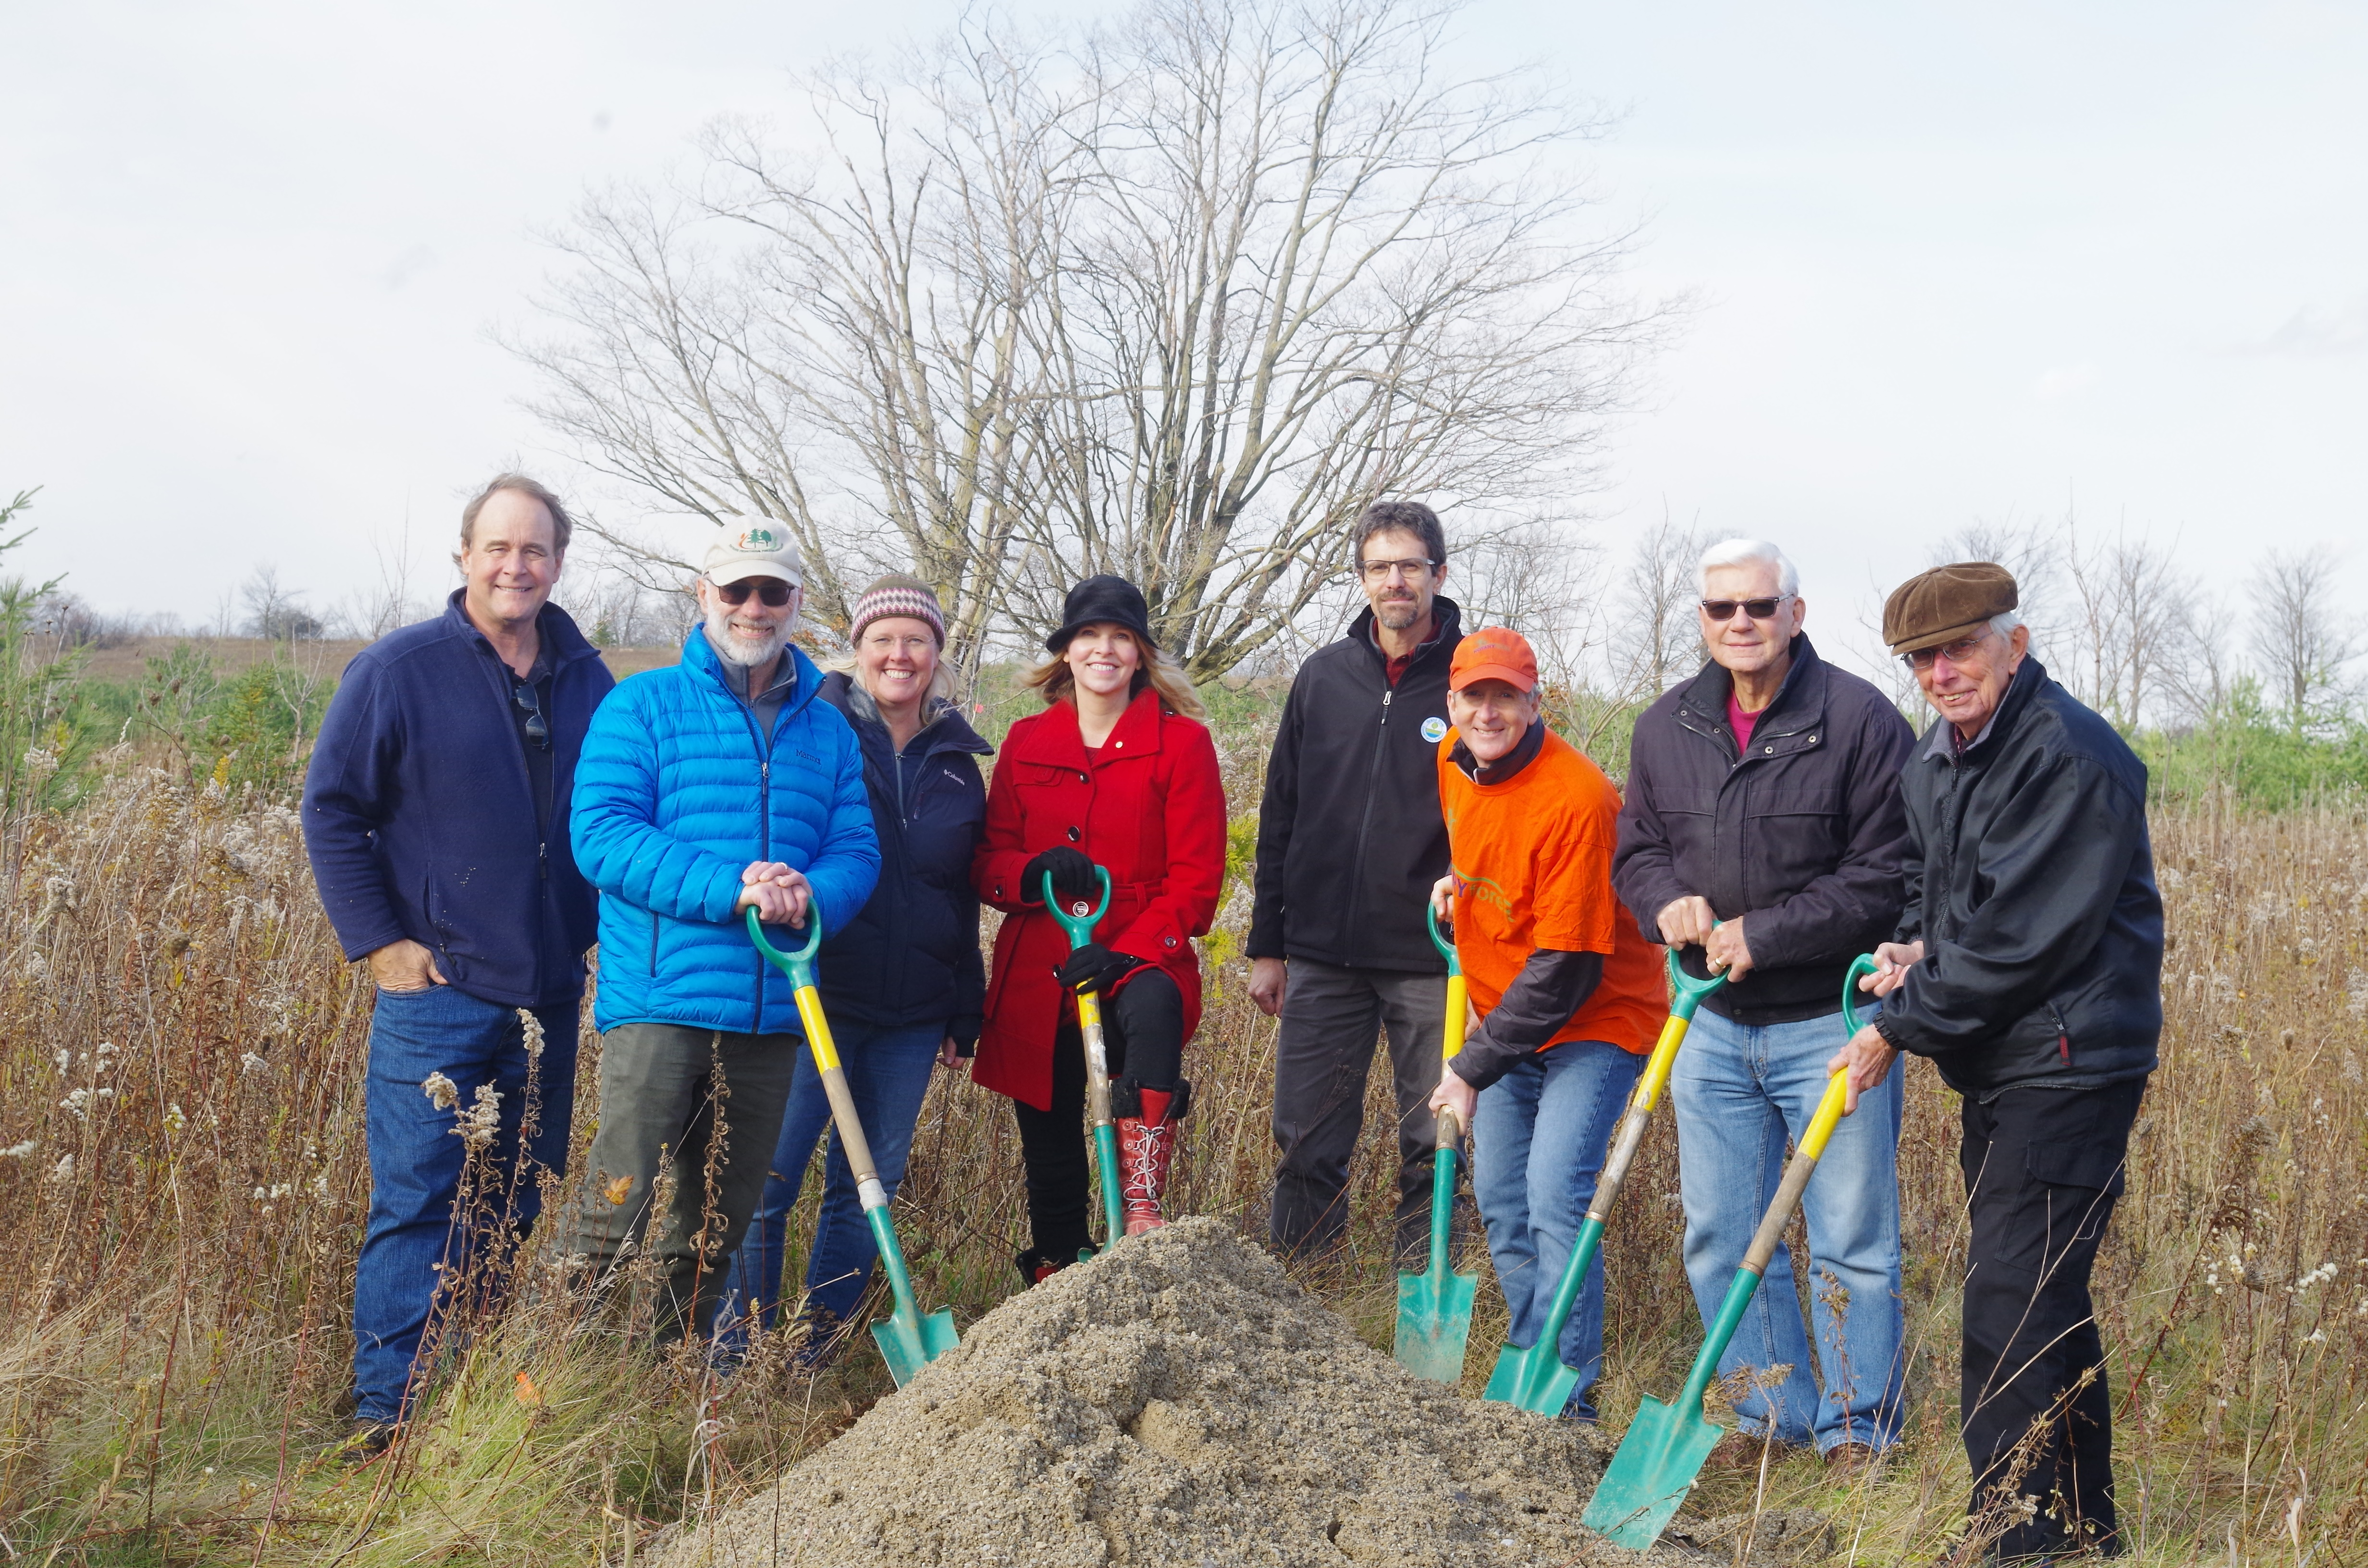 Rotary Trail ground-breaking ceremony